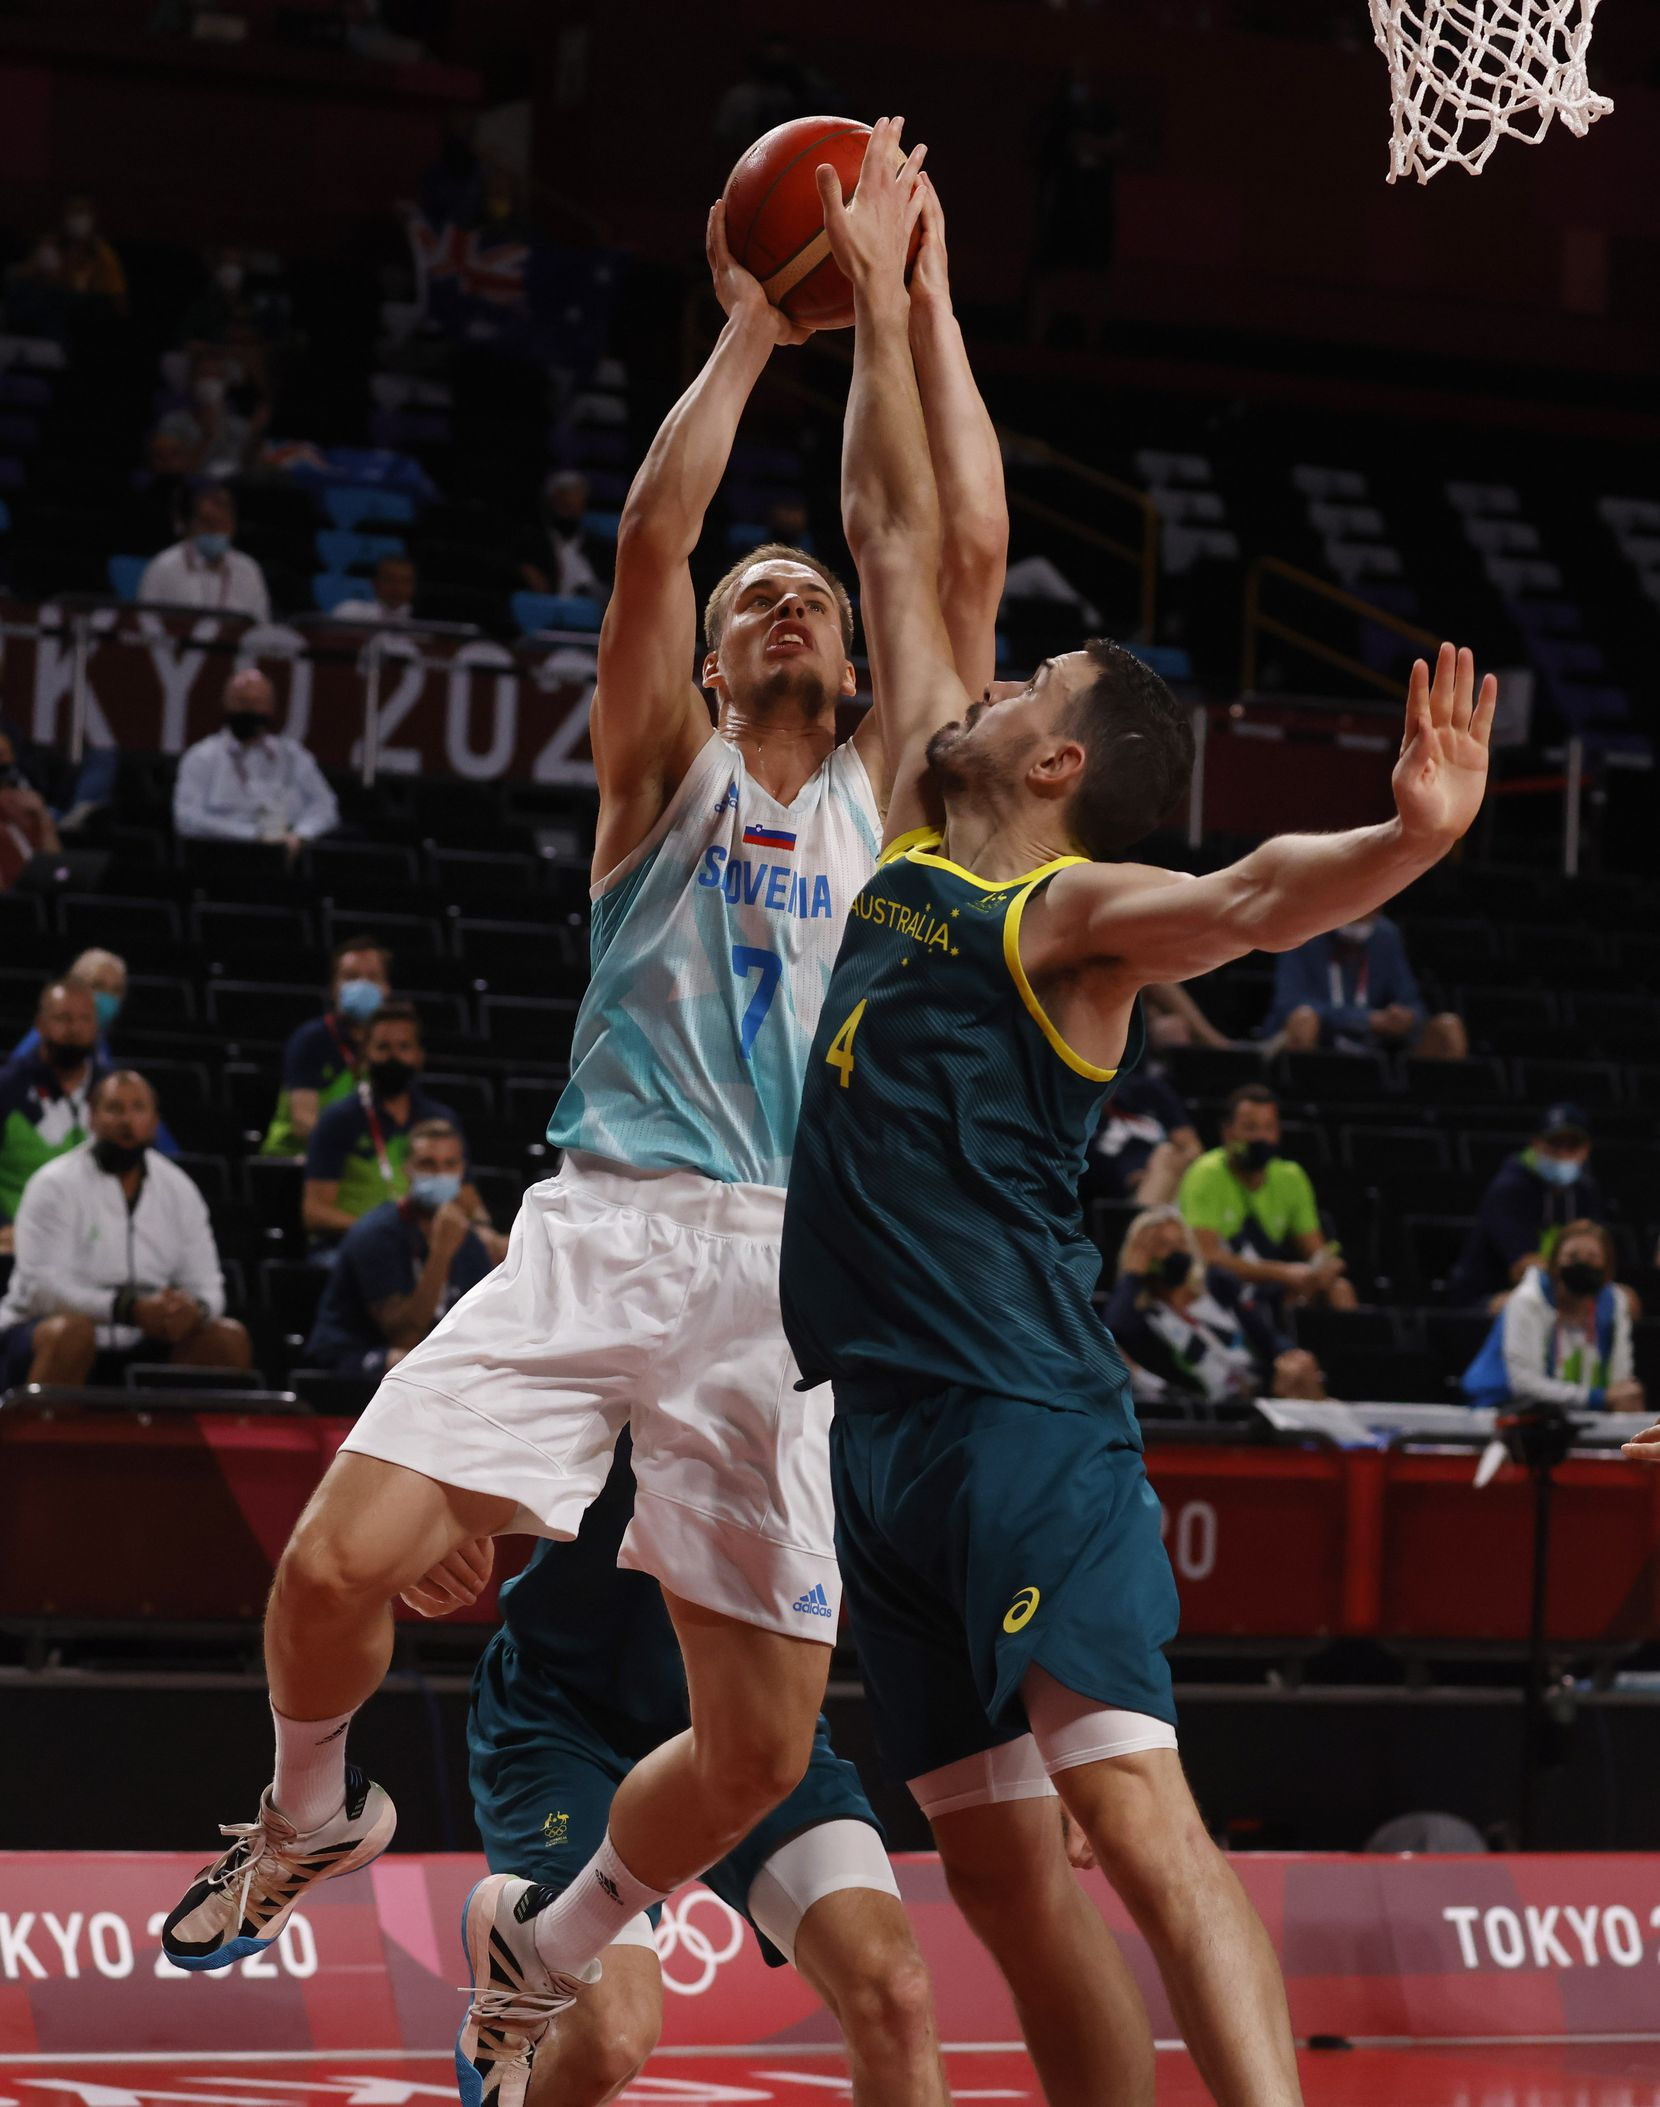 Slovenia's Klemen Prepelic (7) shoots over Australia's Chris Goulding (4) during the second quarter of play in the bronze medal basketball game at the postponed 2020 Tokyo Olympics at Saitama Super Arena, on Saturday, August 7, 2021, in Saitama, Japan. (Vernon Bryant/The Dallas Morning News)